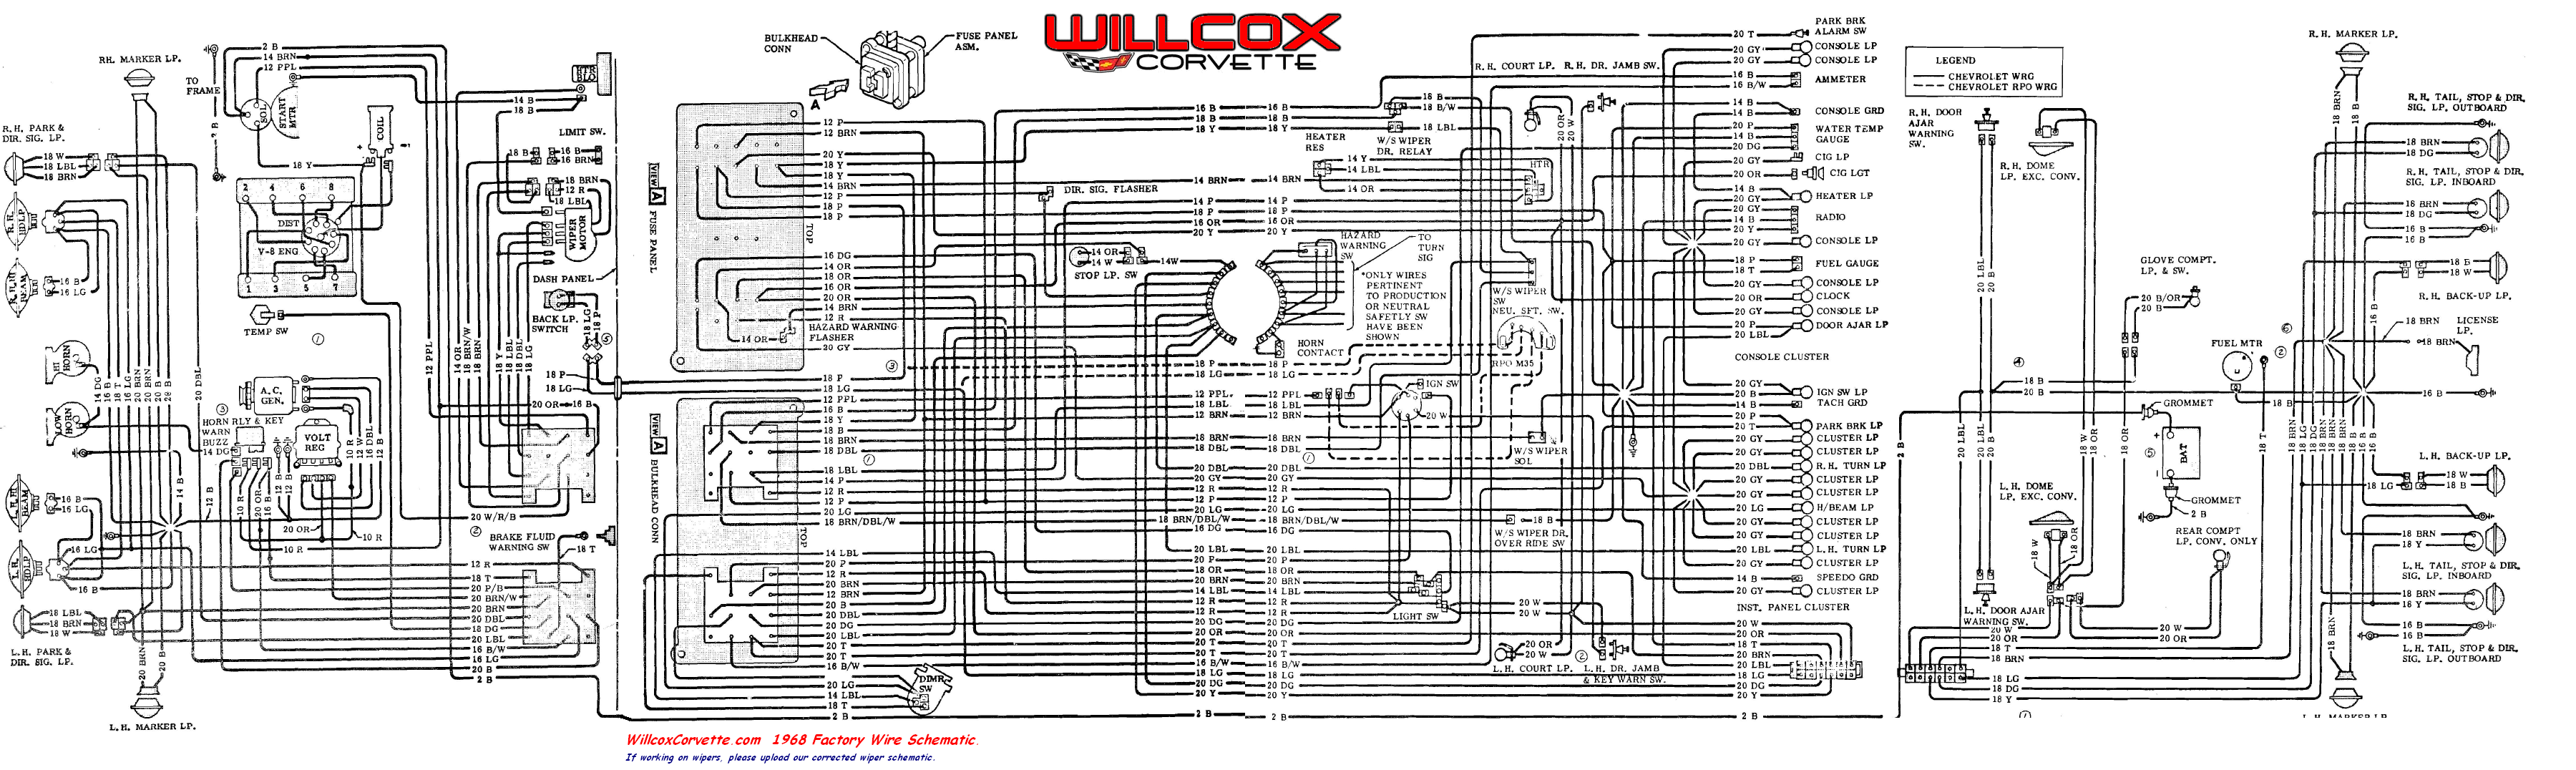 68 wire tracer 95 corvette wiring diagram readingrat net 73 corvette wiring diagram pdf at honlapkeszites.co